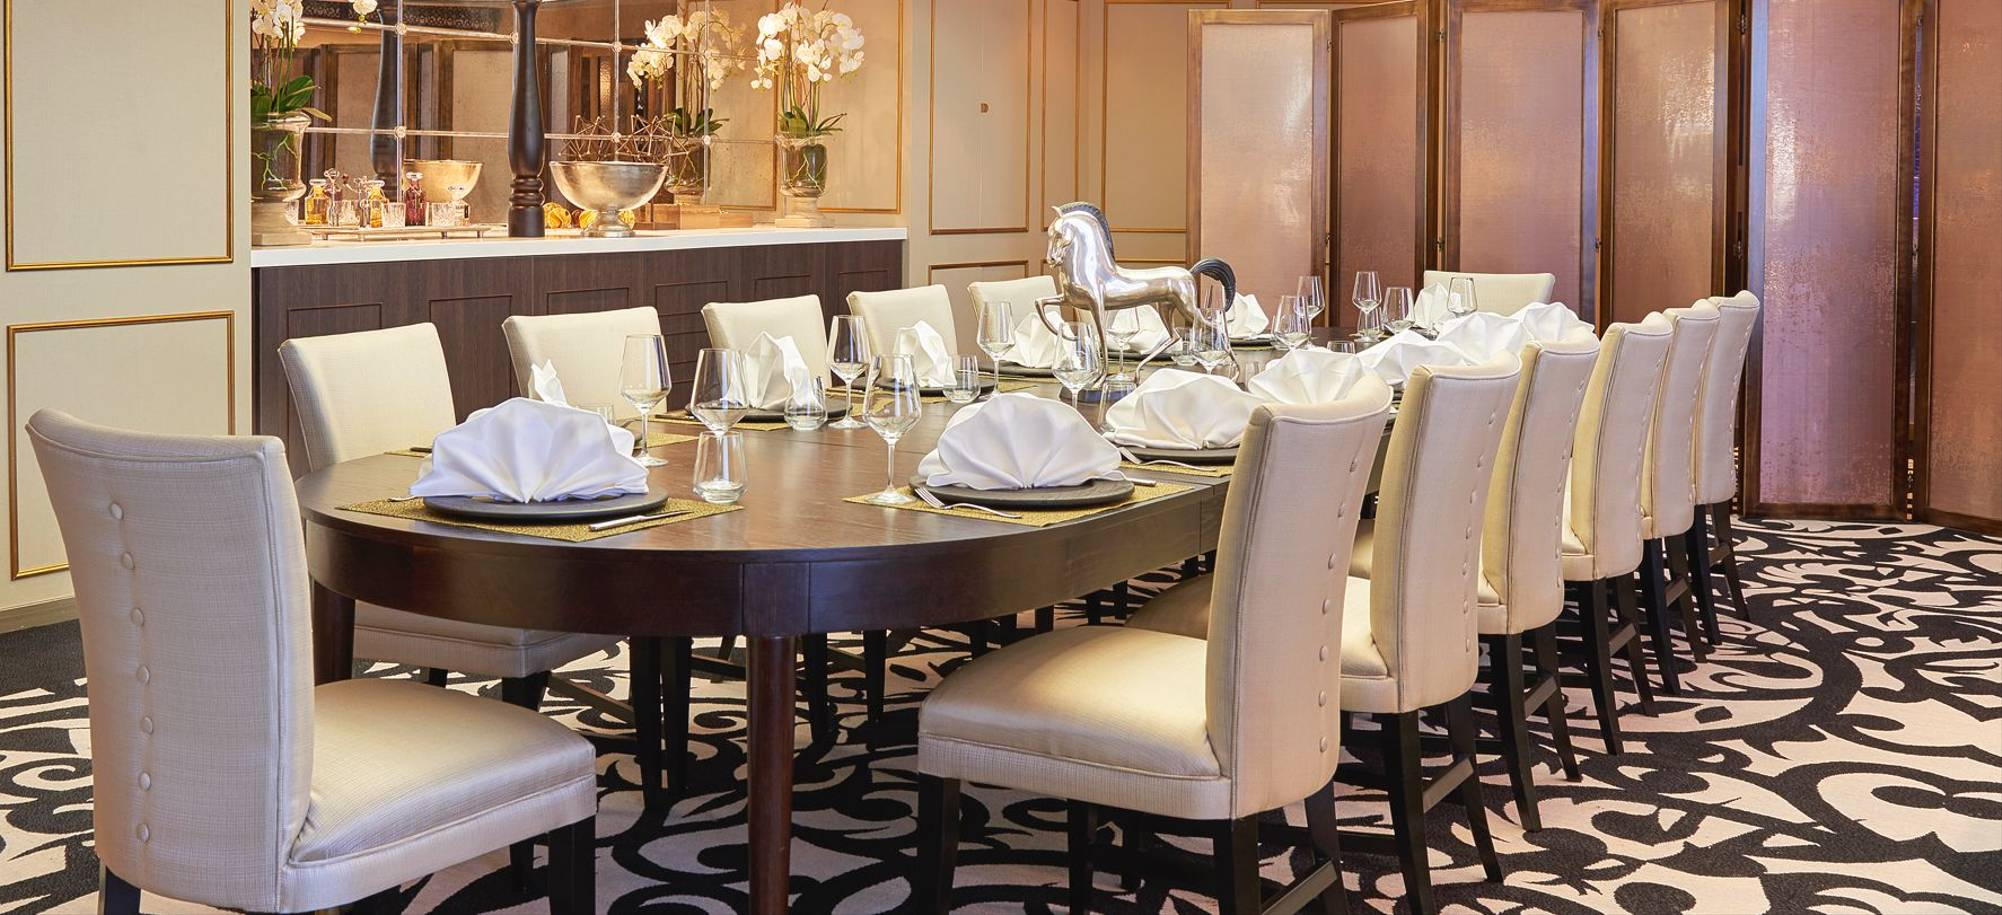 At Sea - Chefs Table - Itinerary Desktop .jpg